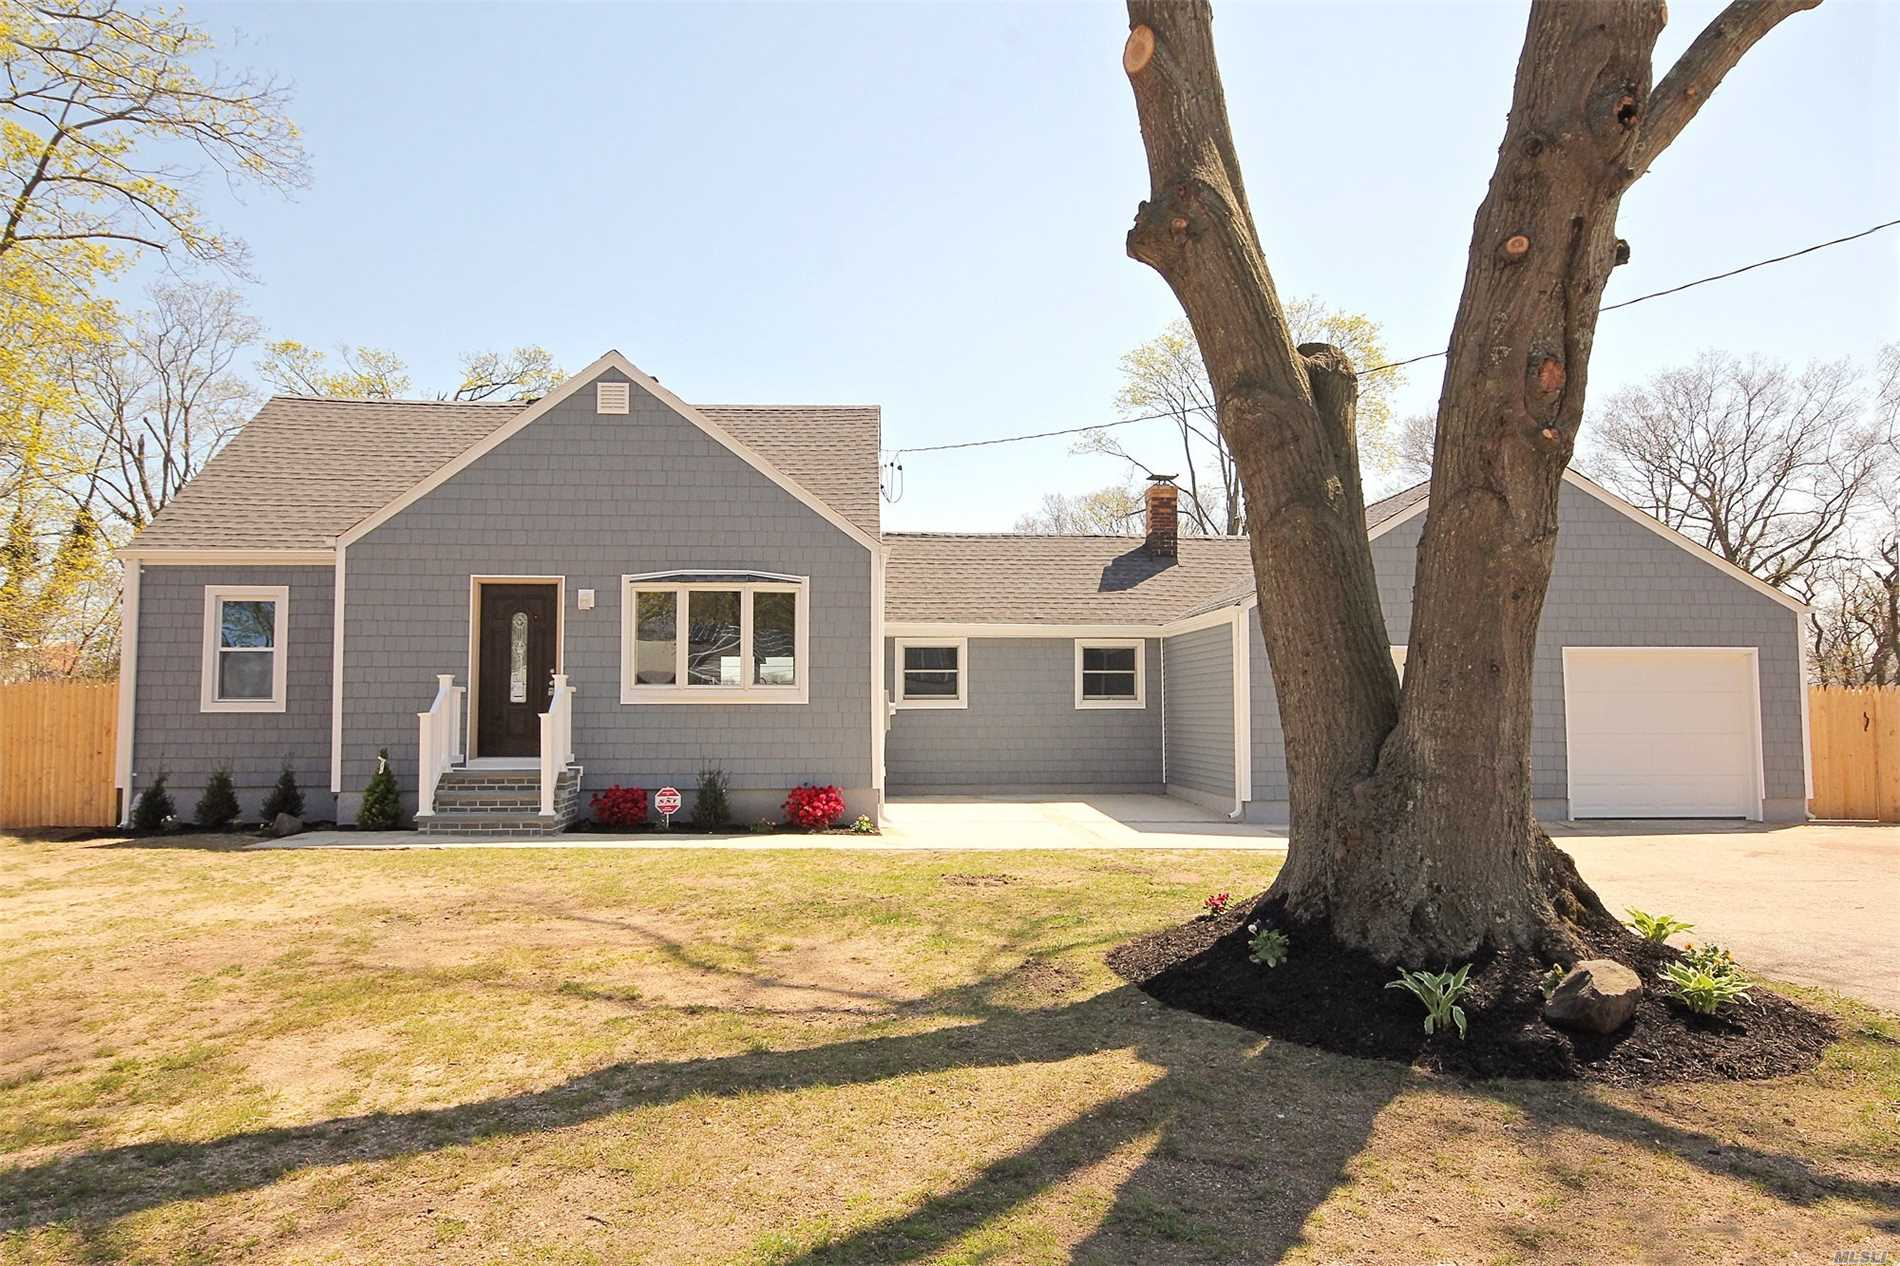 Photo of home for sale at 2 Cleveland St, Islip Terrace NY